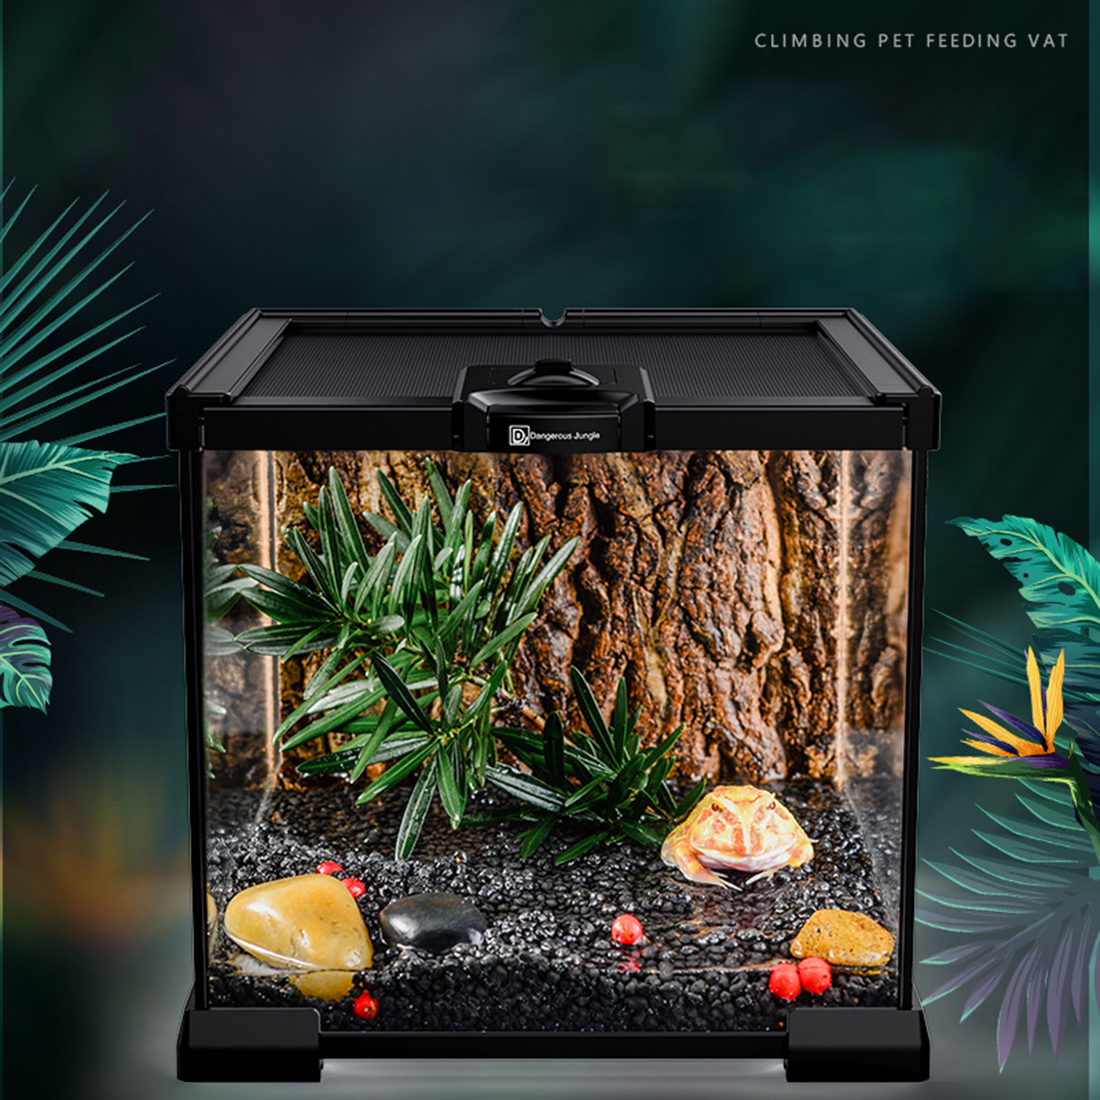 Hot 20 X 20 X 16 Reptile Terrarium Climbing Pet Feeding Box Stackable Beetle Spiders Breeding Container - Black + Transparent